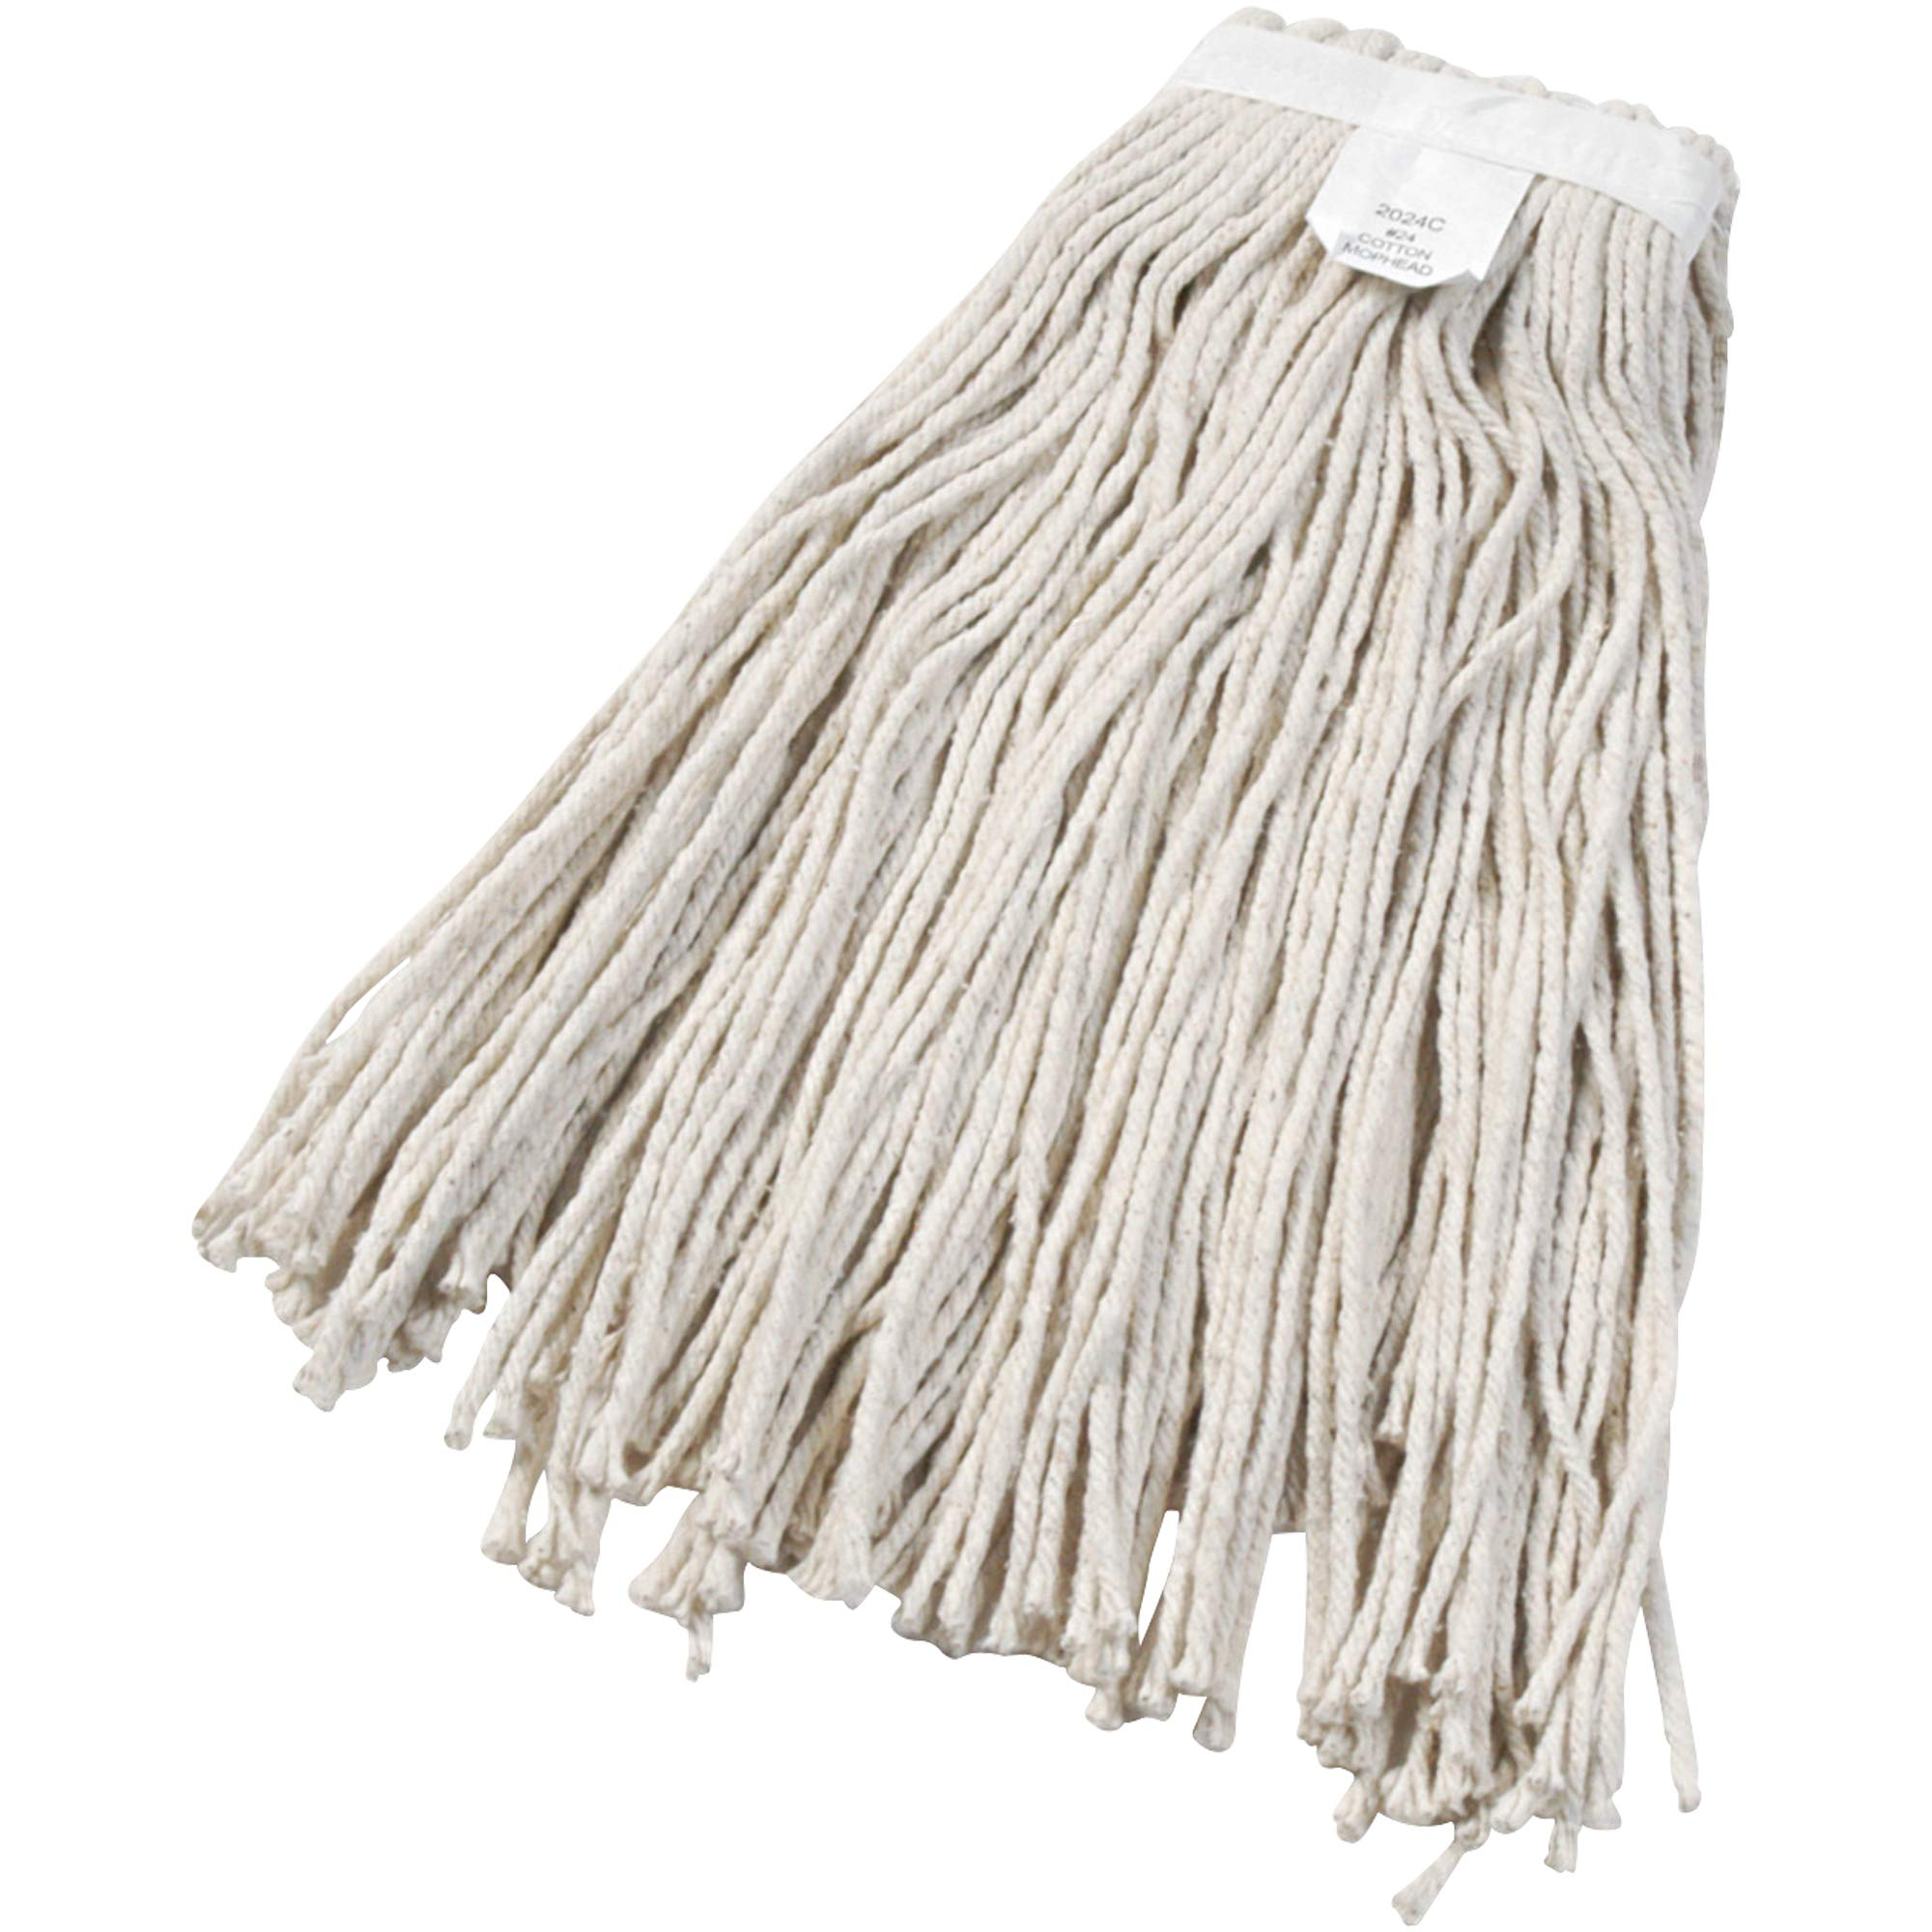 Cut-End Wet Mop Head, Cotton, White, 12/Case